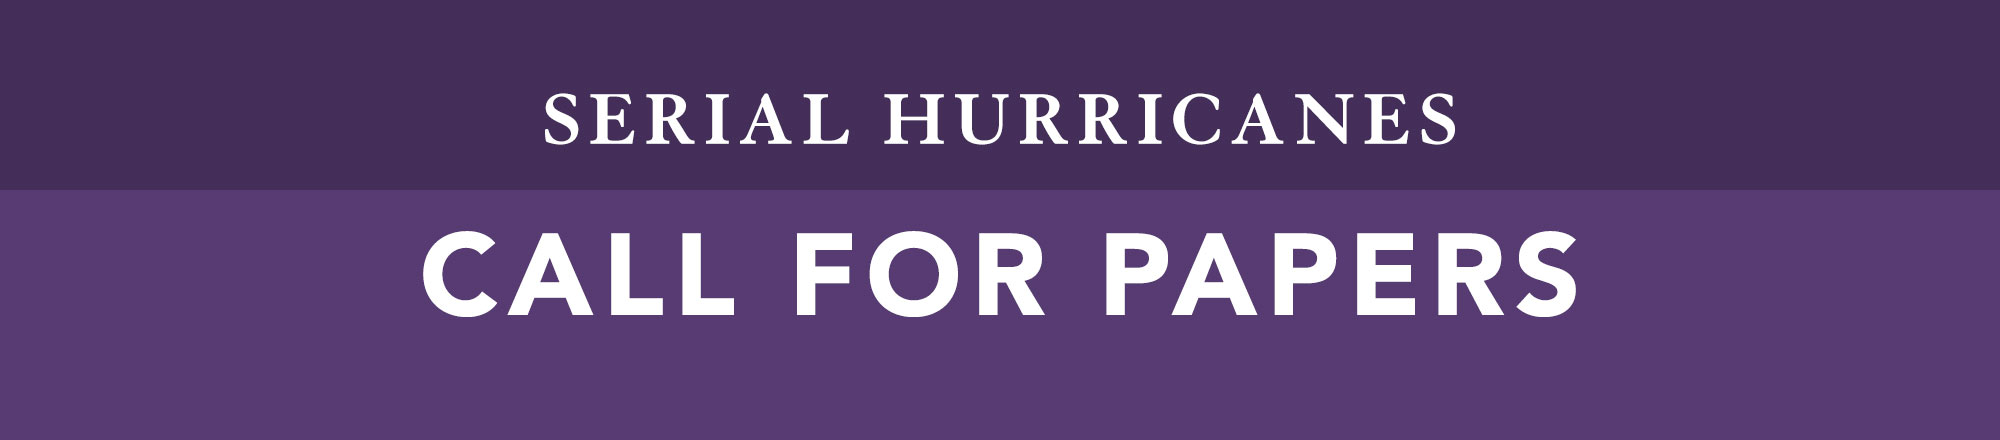 Call for Papers Serial Hurricanes large banner